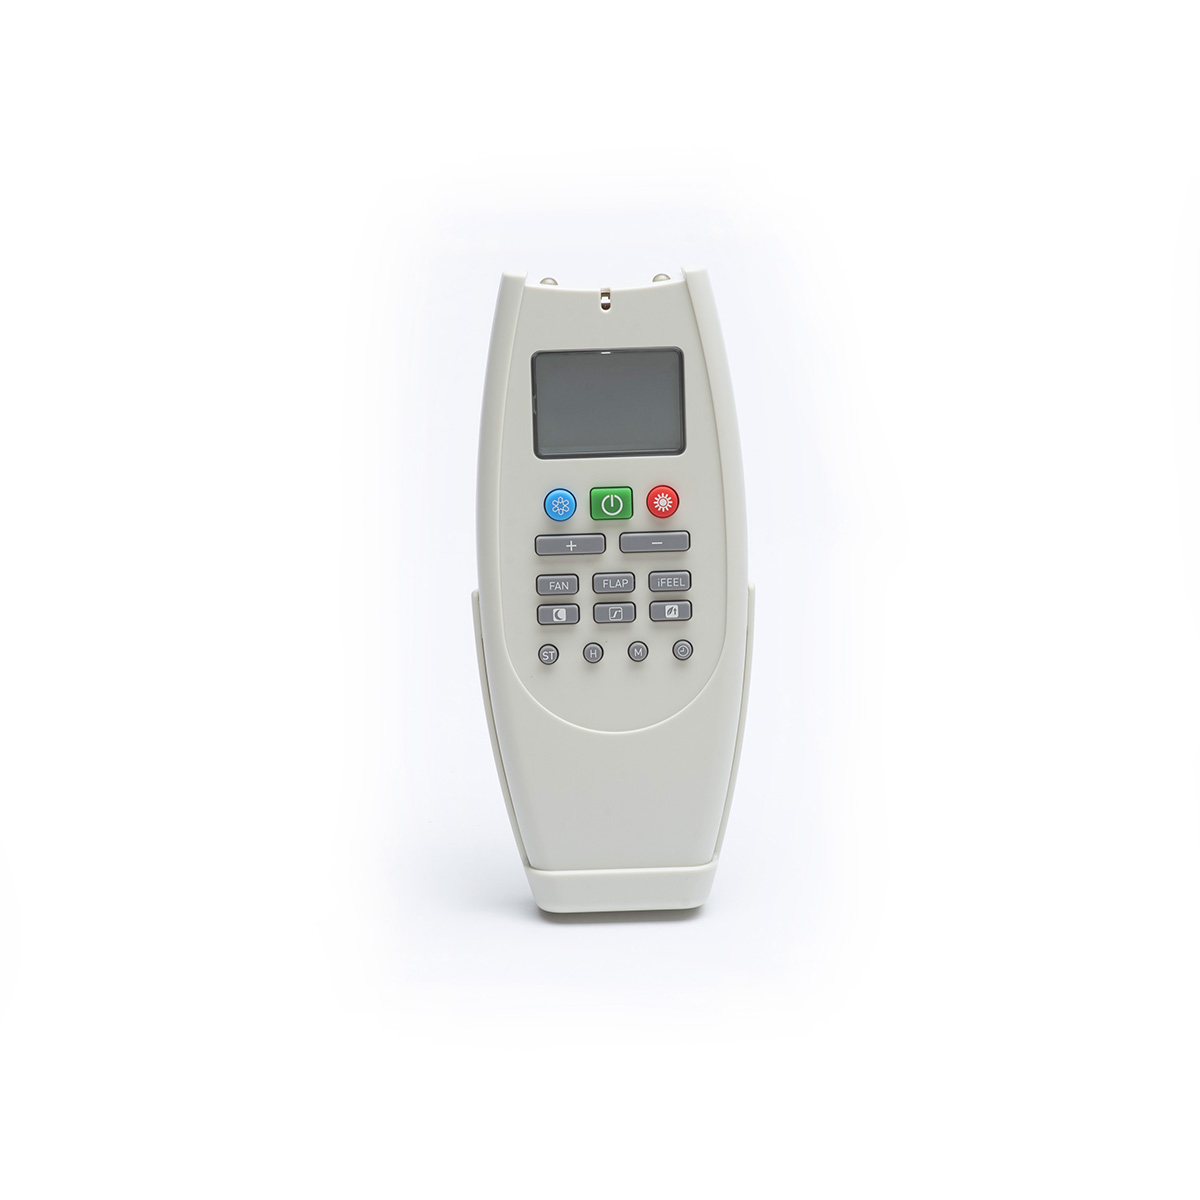 iSeries MP Remote Control